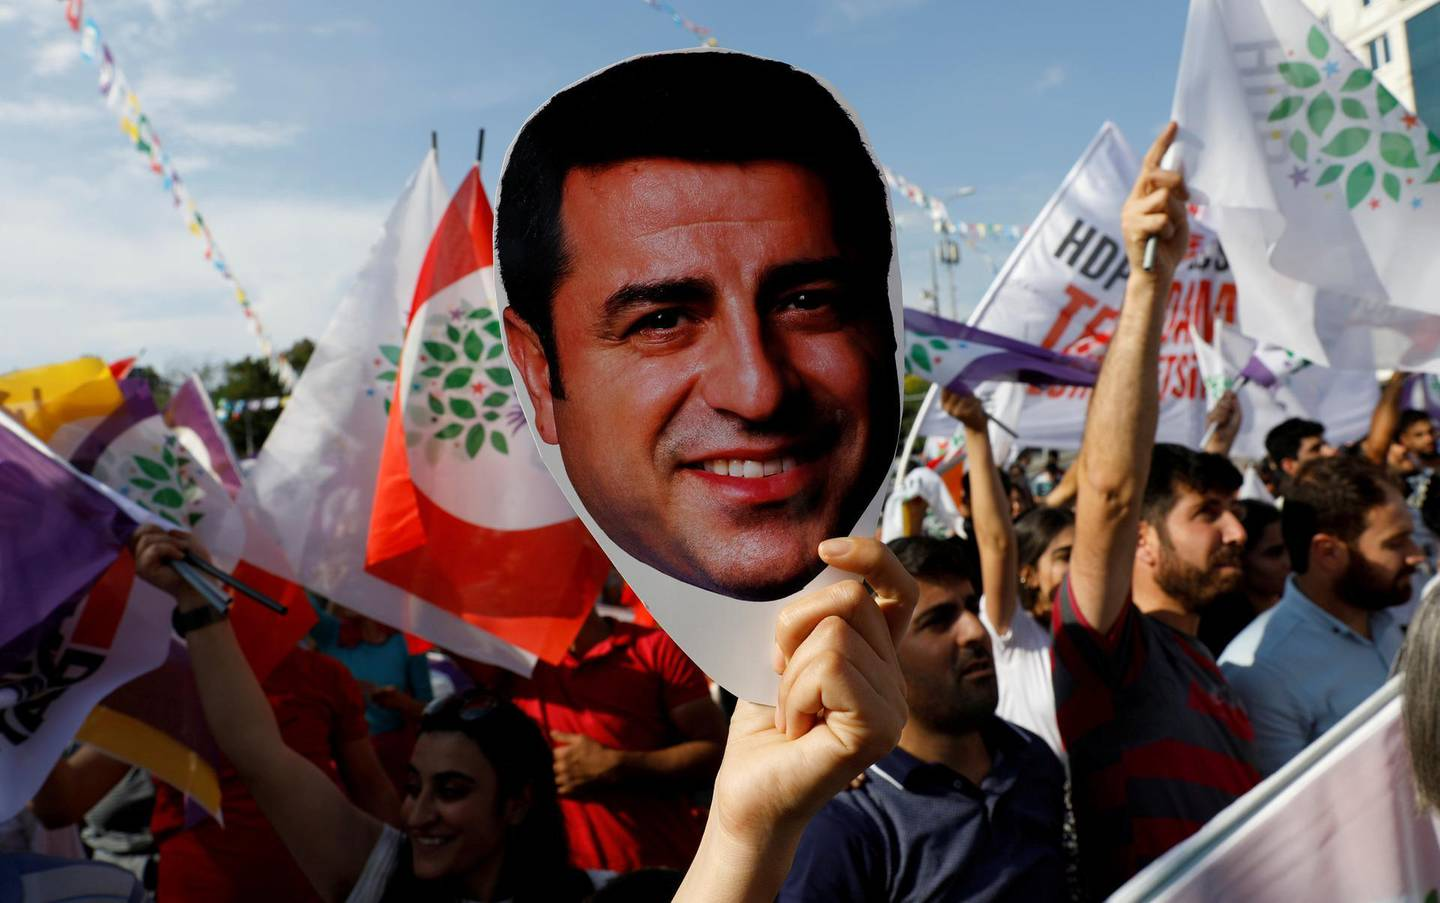 FILE PHOTO: A supporter of the pro-Kurdish Peoples' Democratic Party (HDP) holds a mask of their jailed former leader and presidential candidate Selahattin Demirtas during a rally in Ankara, Turkey, June 19, 2018. REUTERS/Umit Bektas/File Photo